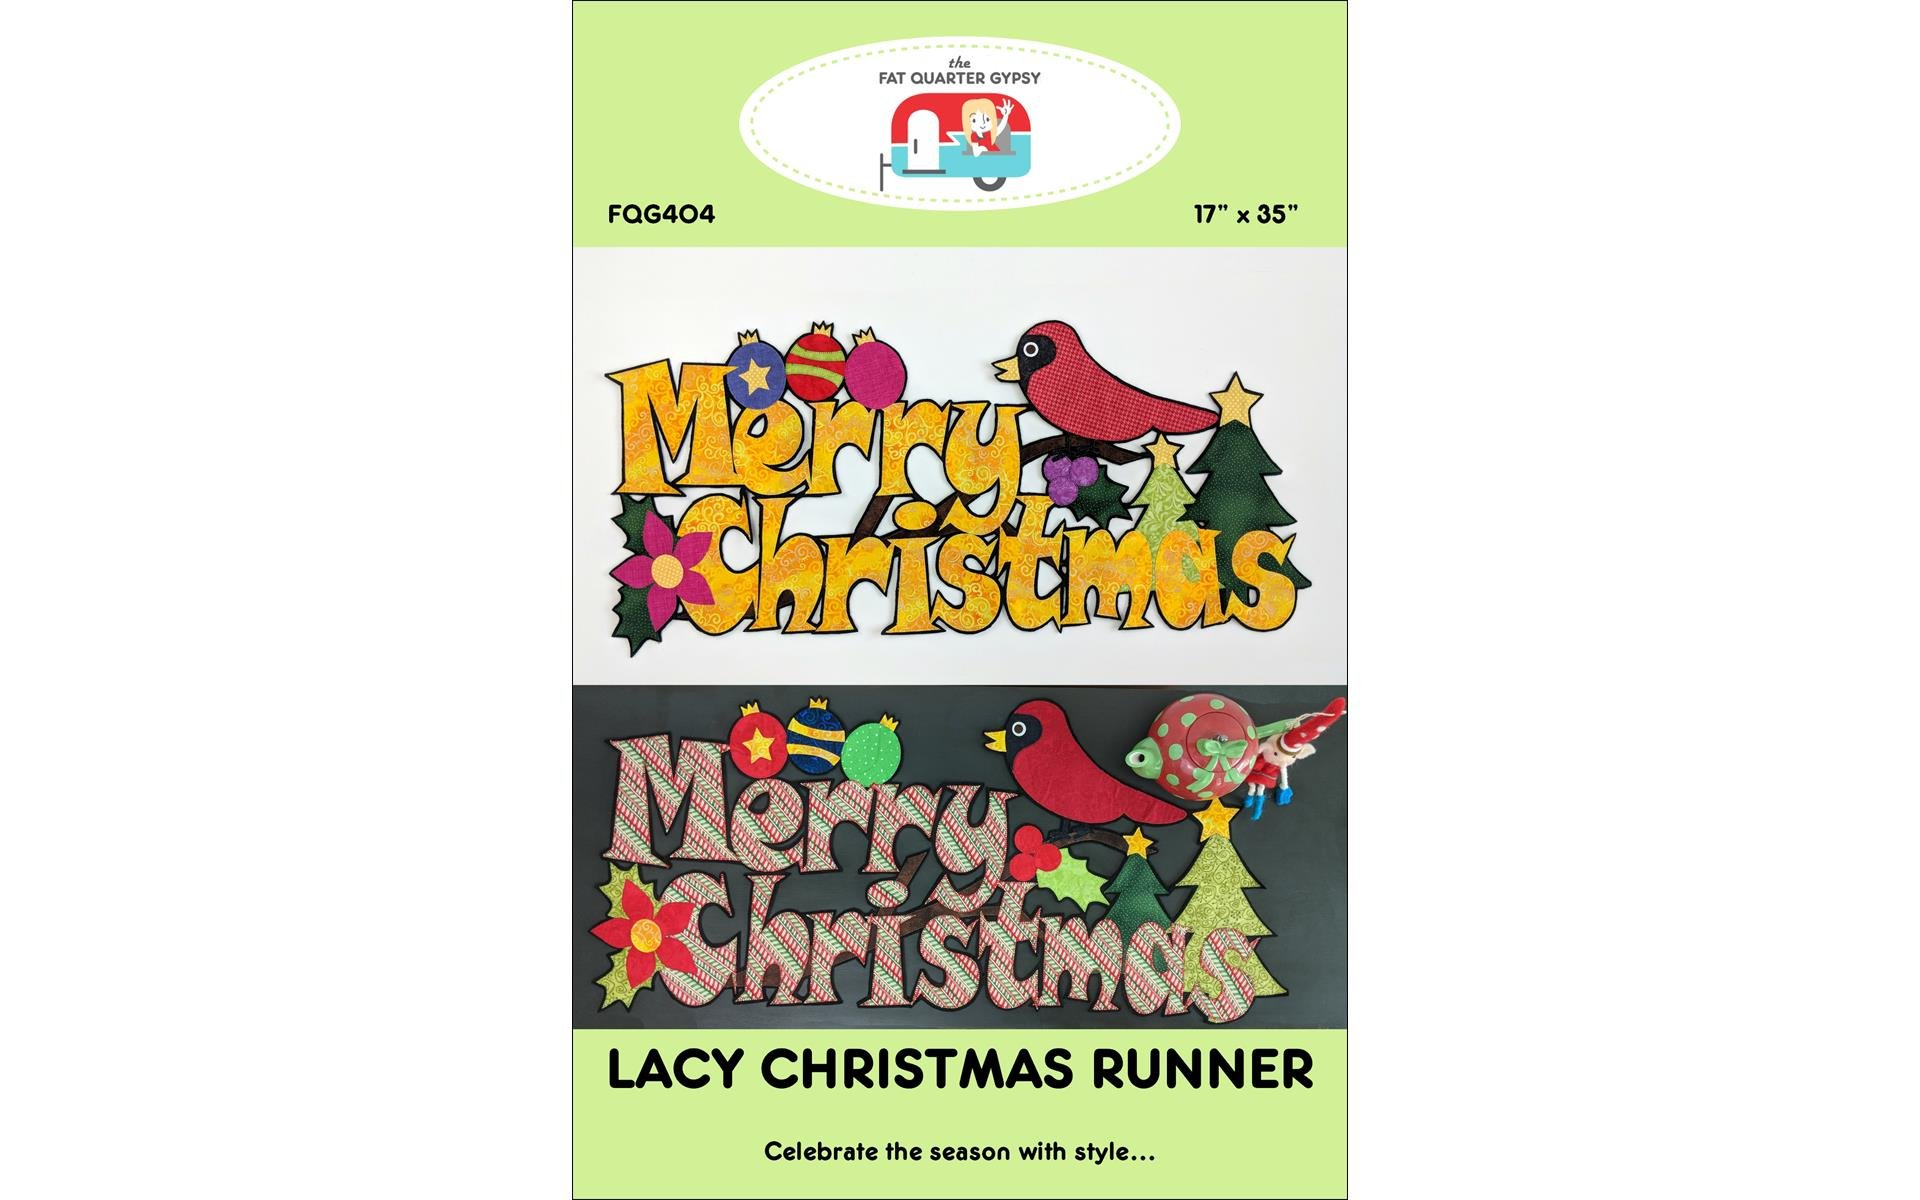 Lacy Christmas Runner